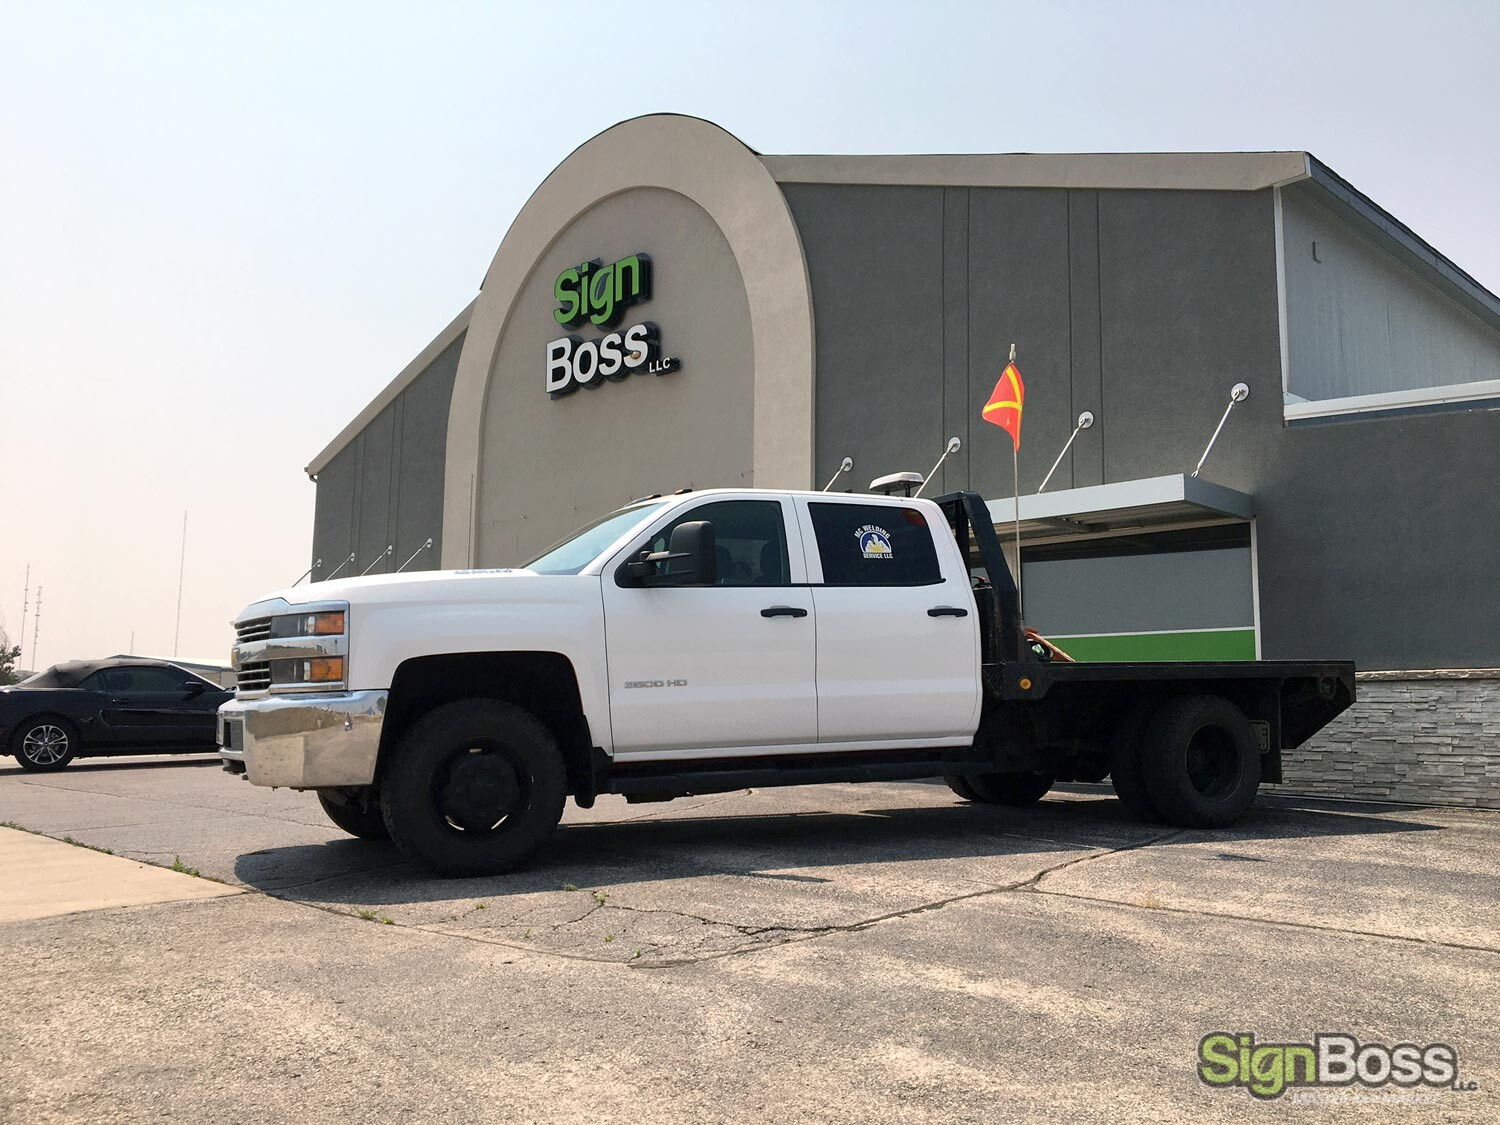 Color change vehicle wraps in Gillette WY